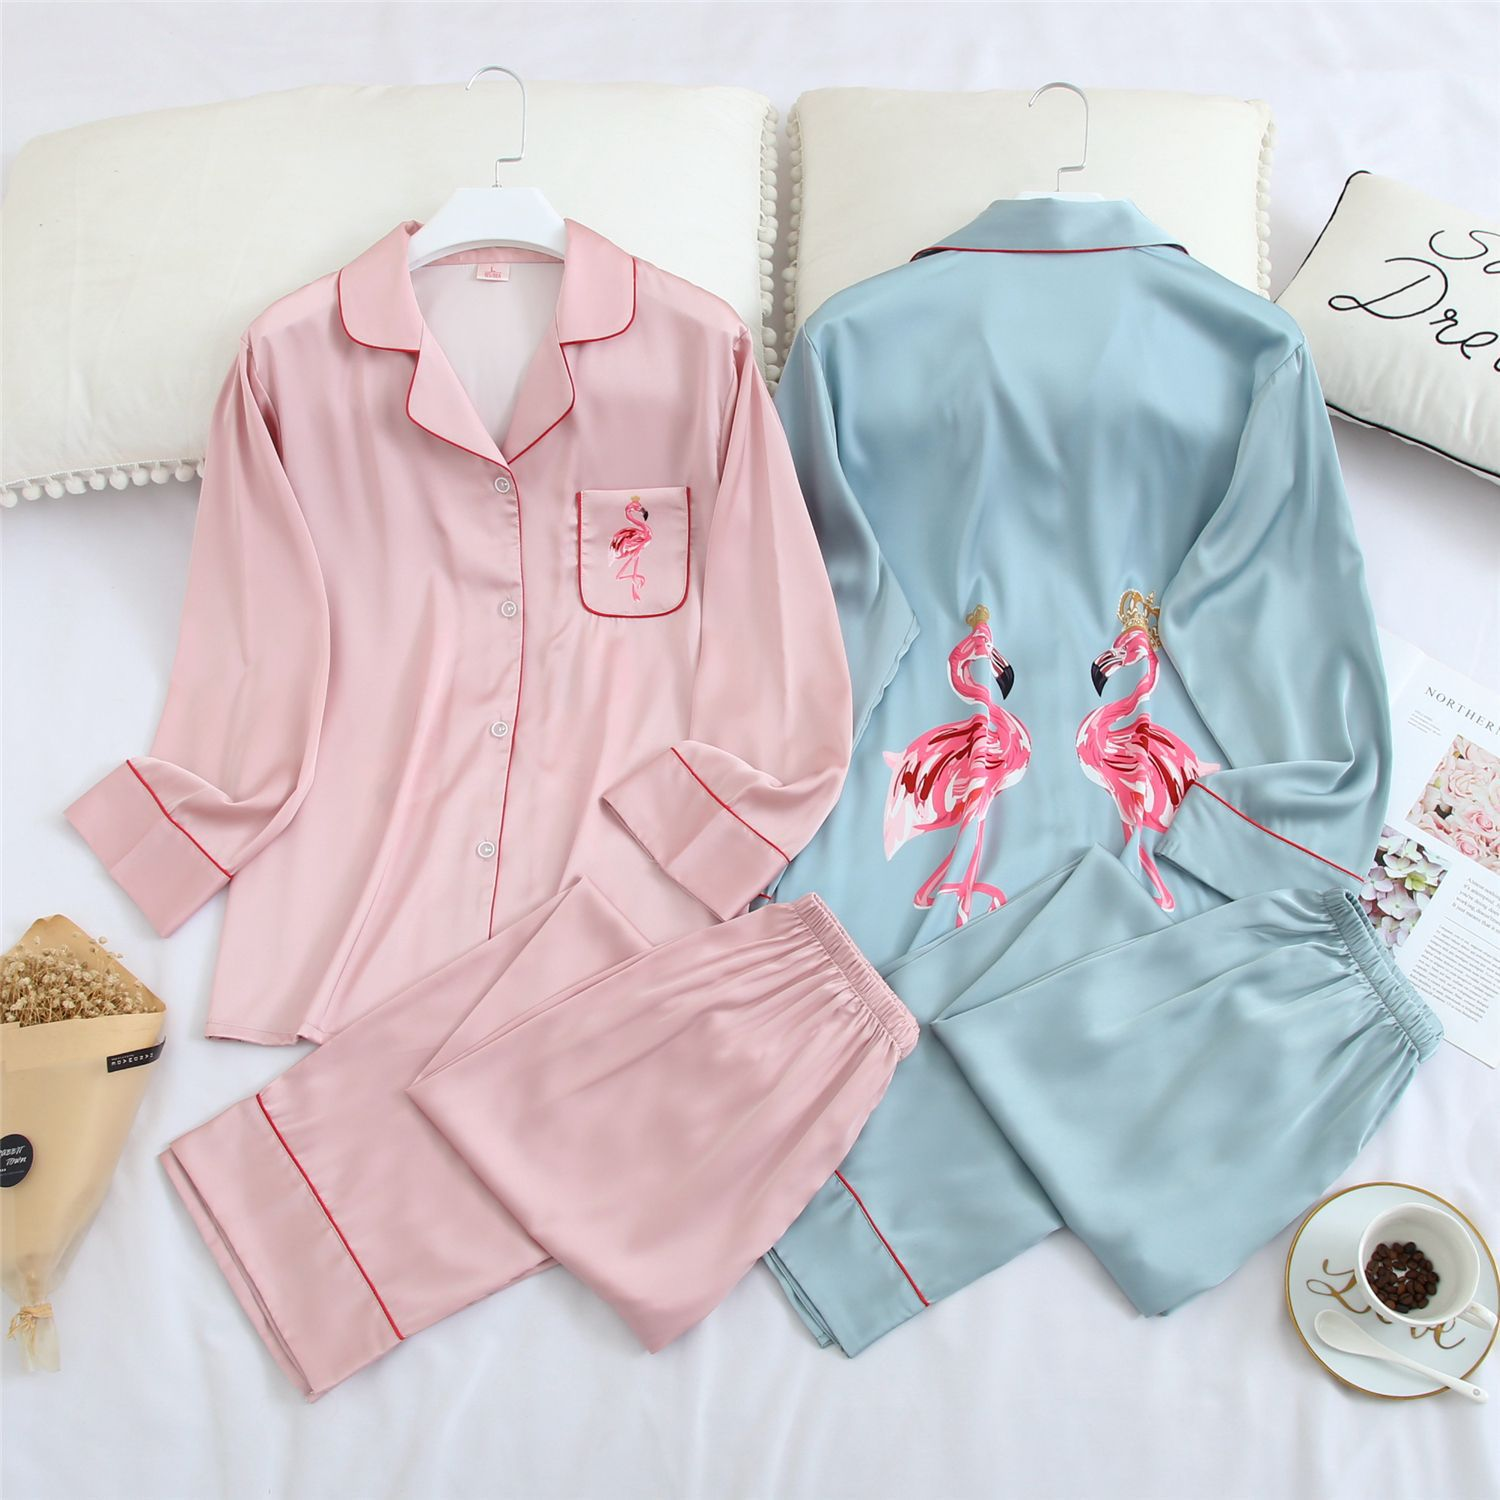 Spring New Chiffon Long Sleeve Pajamas Women Printed Lapel Cute Pajamas Satin Sleepwear